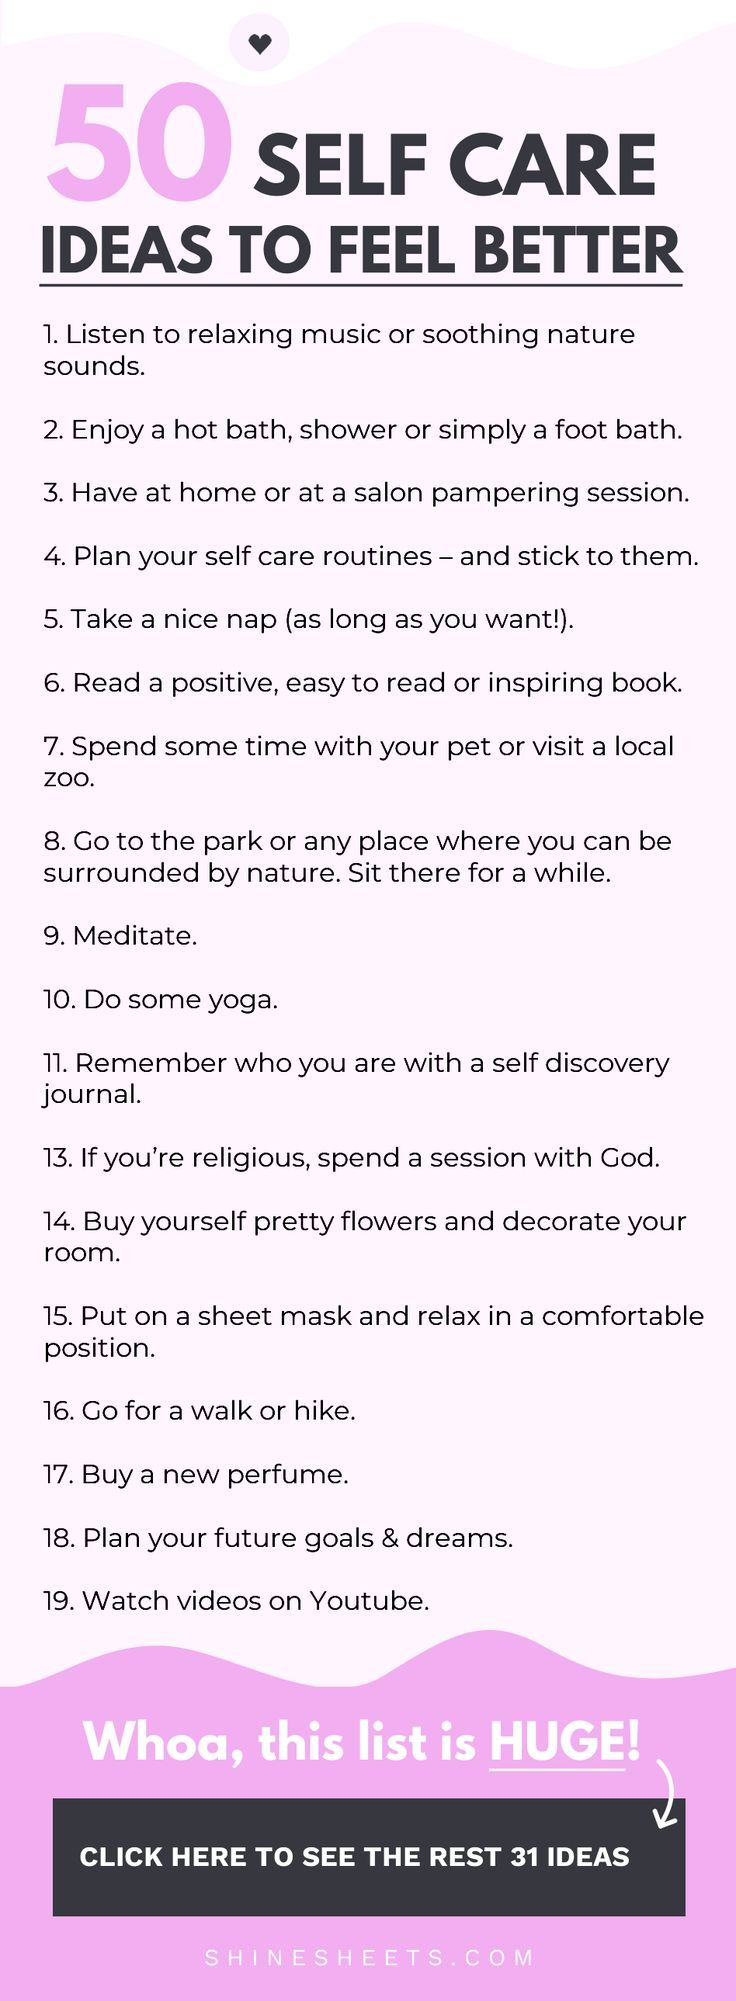 50 easy, inspiring and relaxing Self Care ideas & activities to help you recharge yourself and boost your overall wellbeing.  